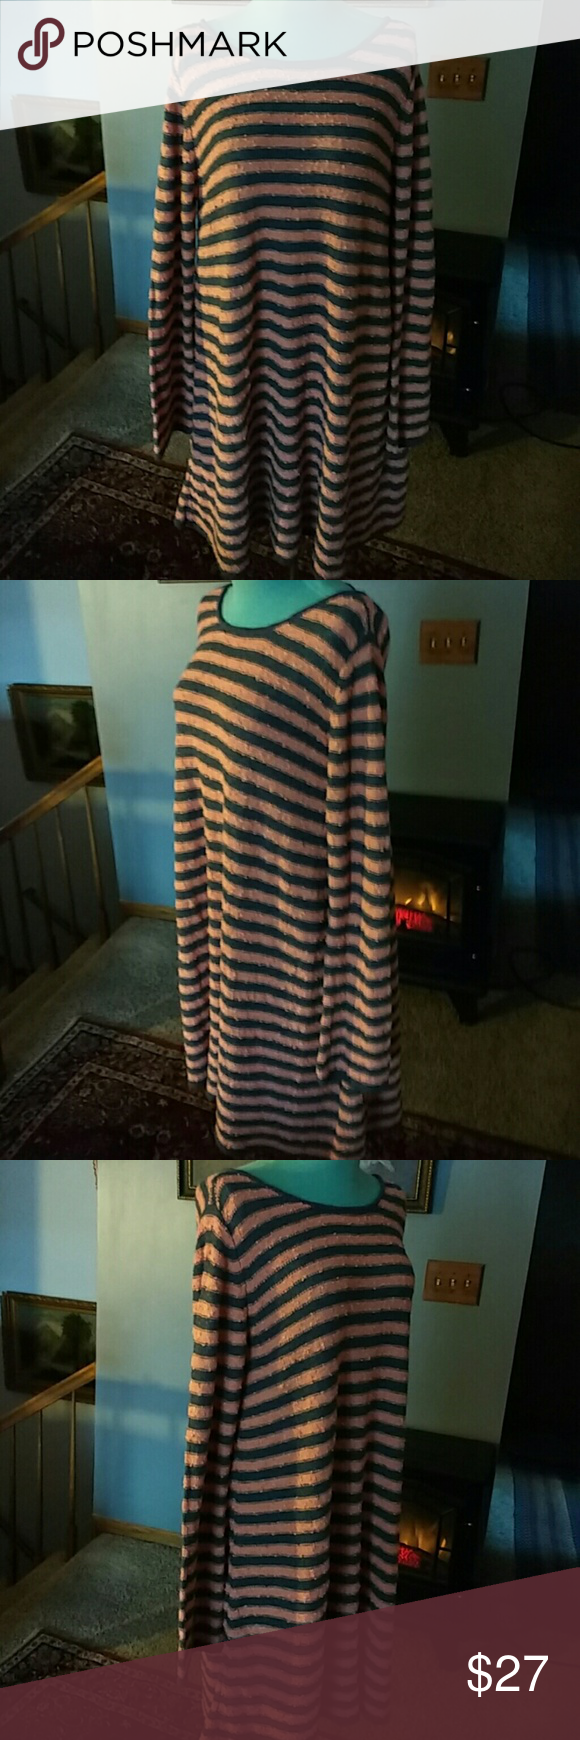 "Free People Sweater Dress Graphite grey and Orange cotton sweater dress with a V neckline in the back has never been worn looser fit great for layering is 33"" long Free People Dresses"